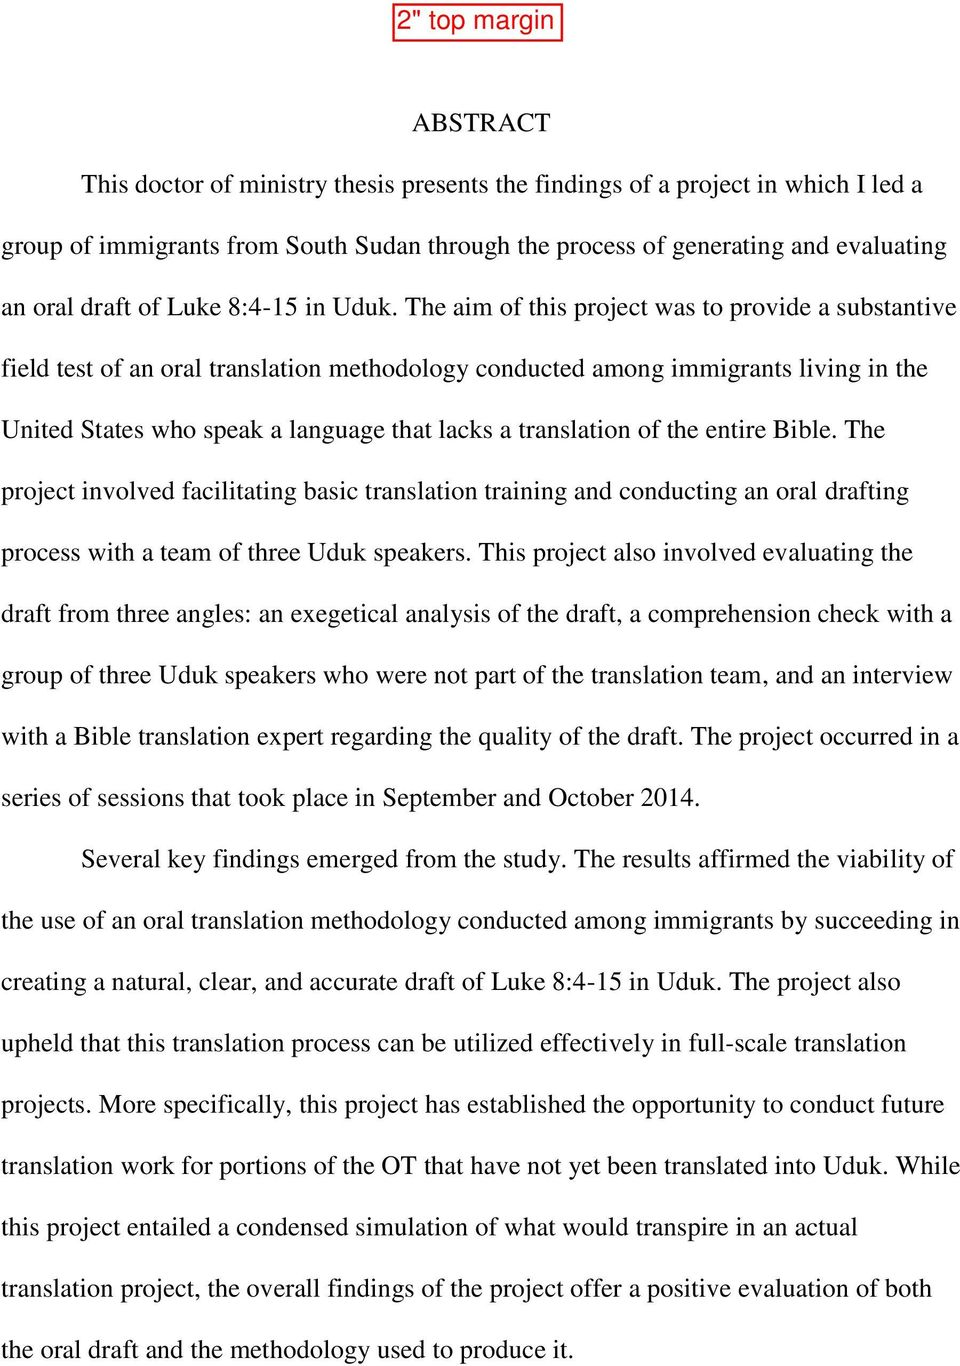 The aim of this project was to provide a substantive field test of an oral translation methodology conducted among immigrants living in the United States who speak a language that lacks a translation